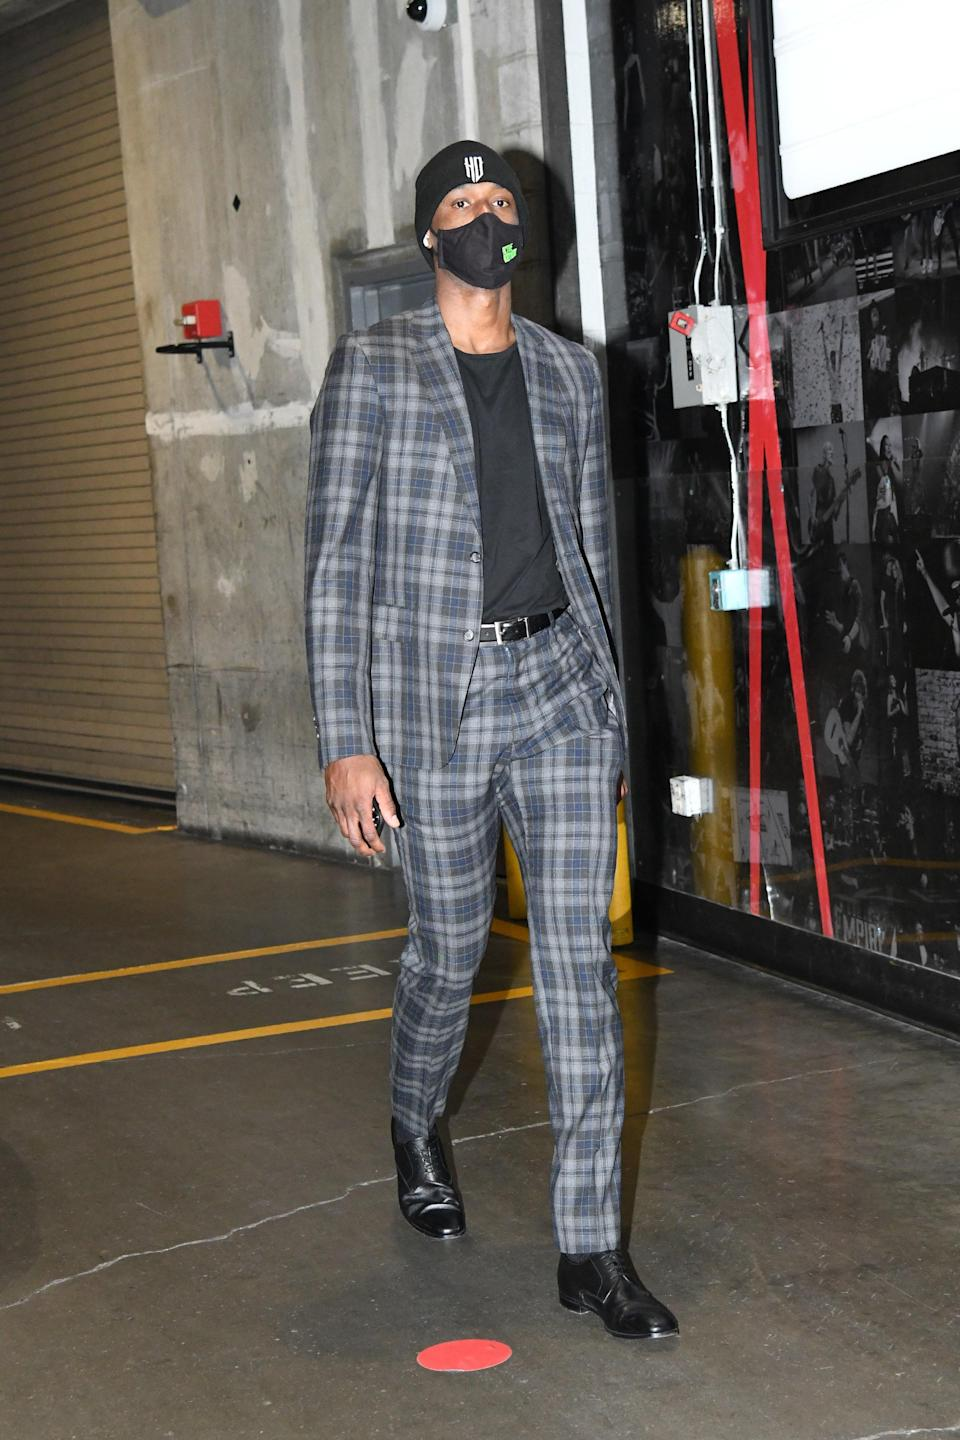 Harrison Barnes of the Sacramento Kings arrives for a game against the Clippers in Los Angeles, January 20, 2021.